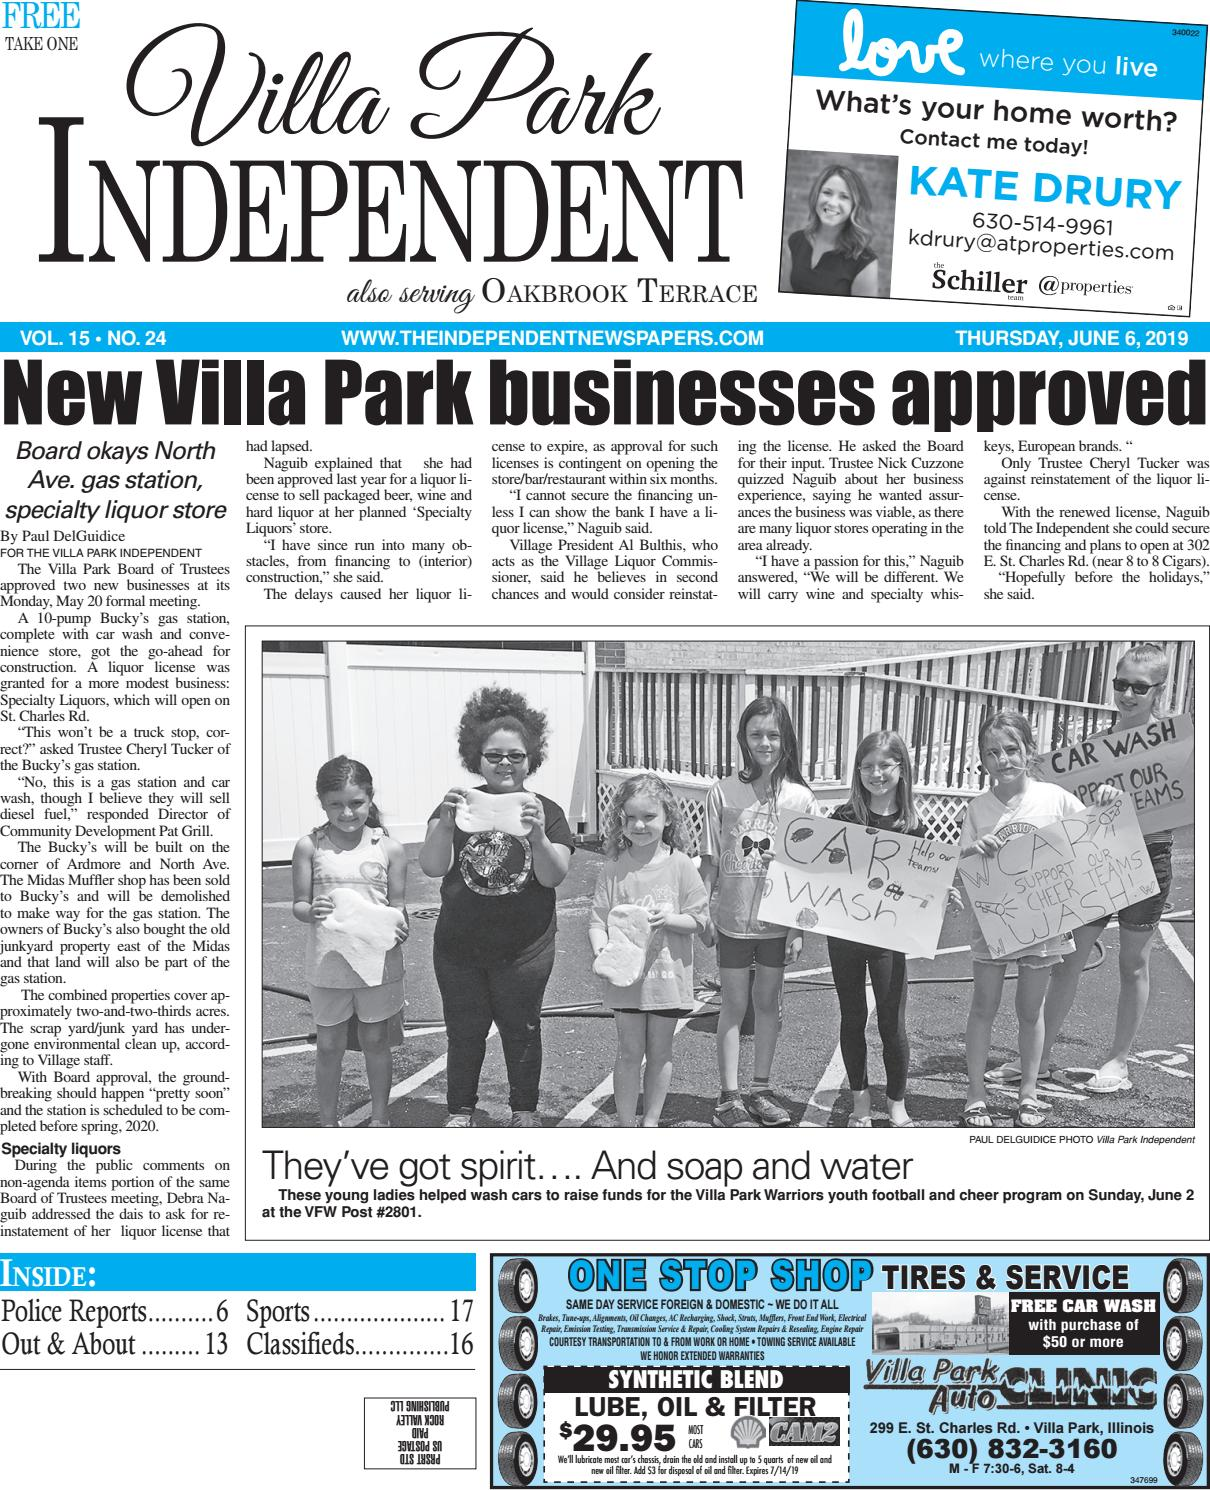 VI6619 by Southern Lakes Newspapers / Rock Valley Publishing